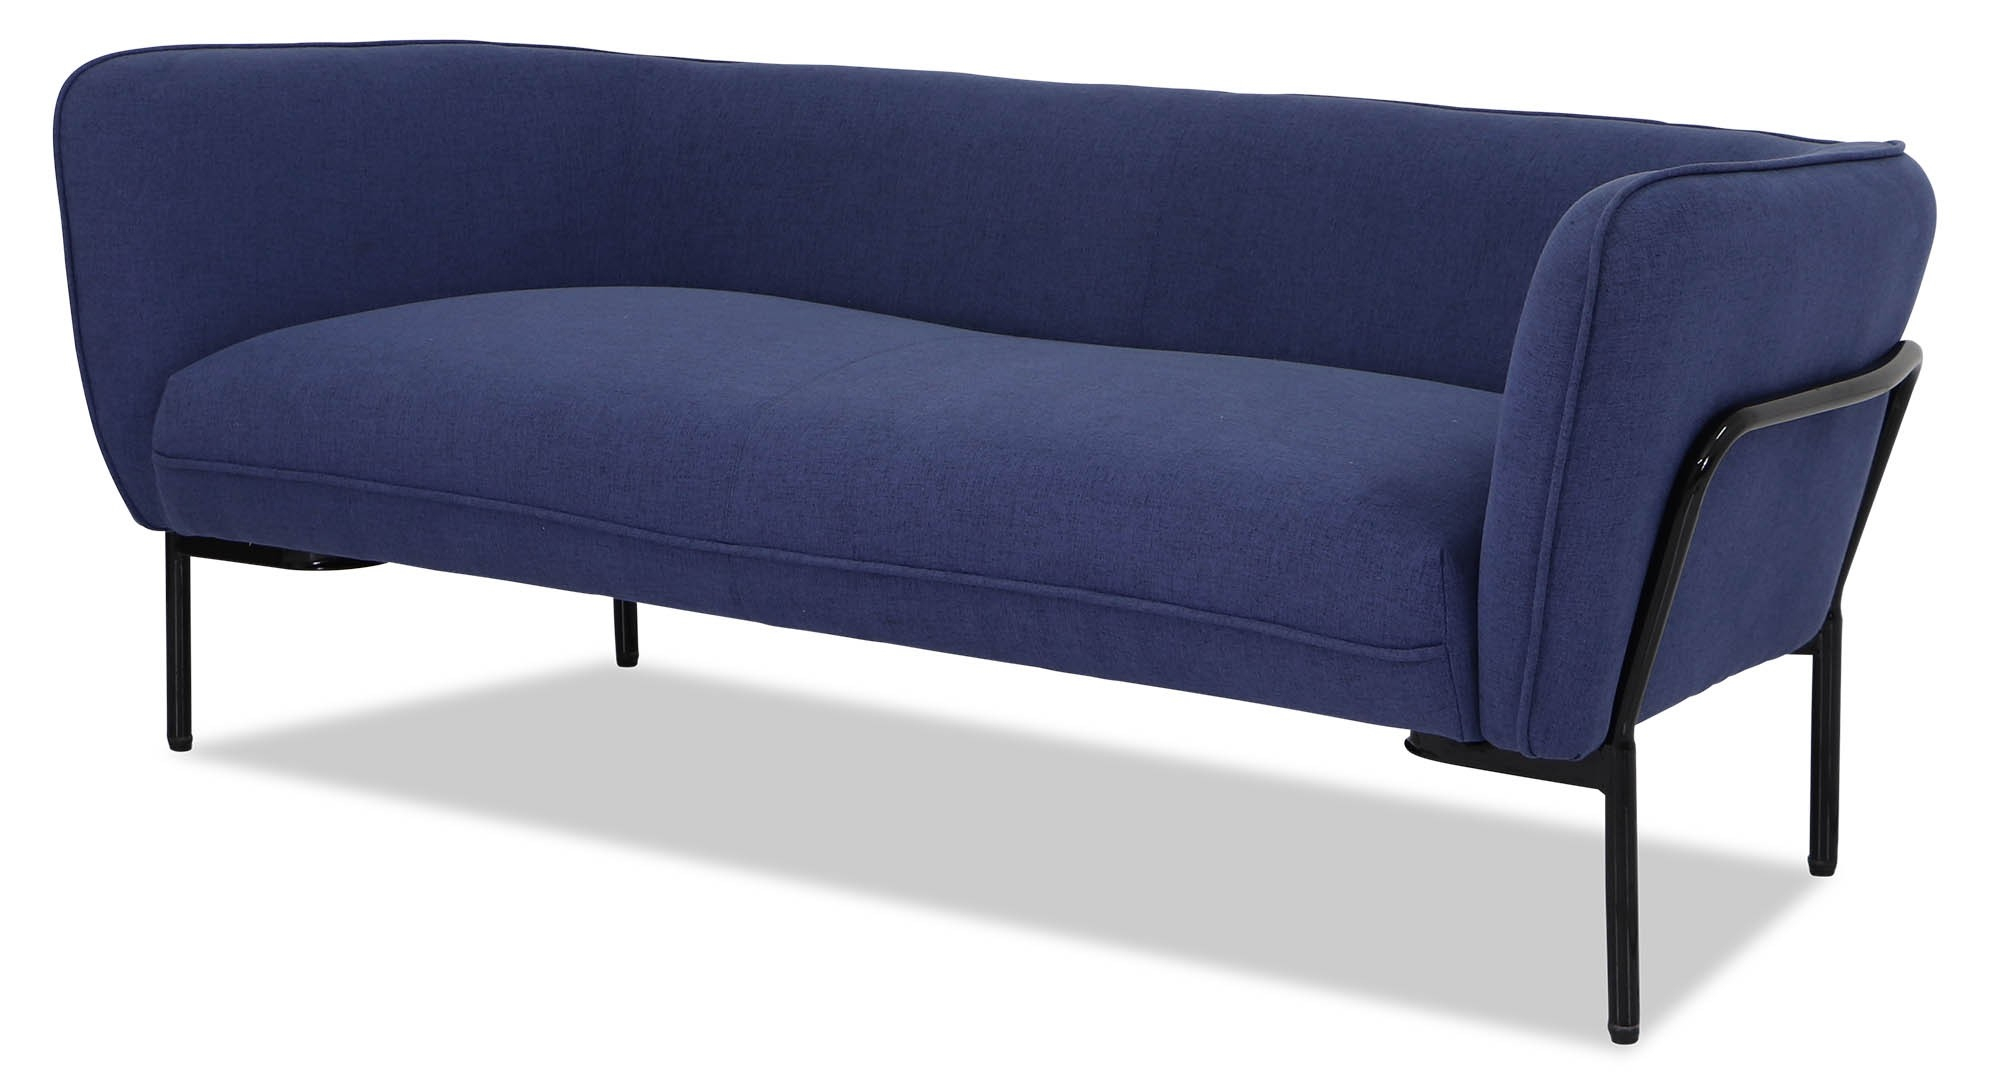 Karen Sofa In Ink Blue With Black Iron Stand | Furniture & Home With Karen Sofa Chairs (Image 17 of 25)